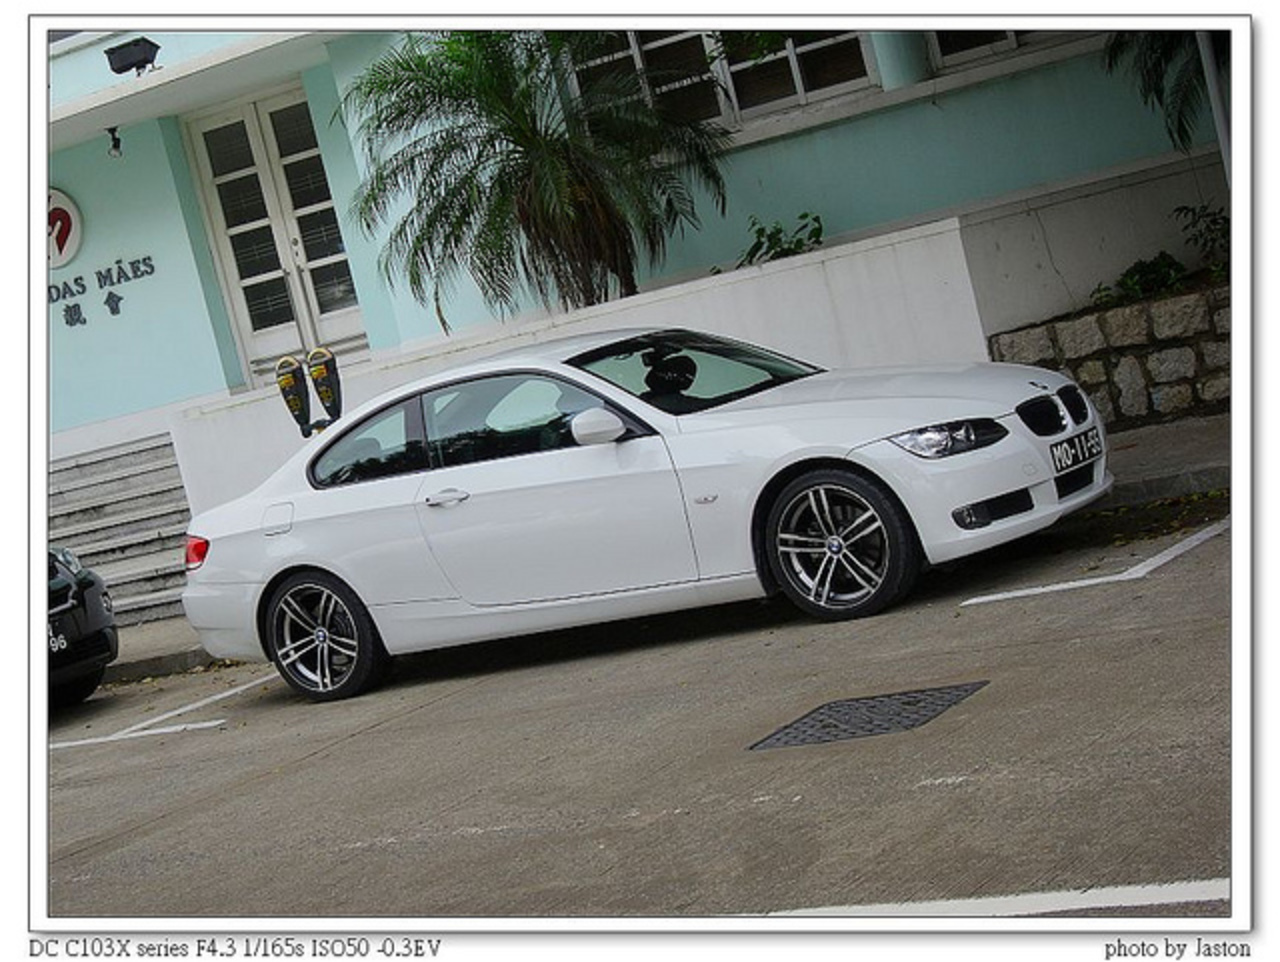 B.M.W. 320I COUPE | Flickr - Photo Sharing!